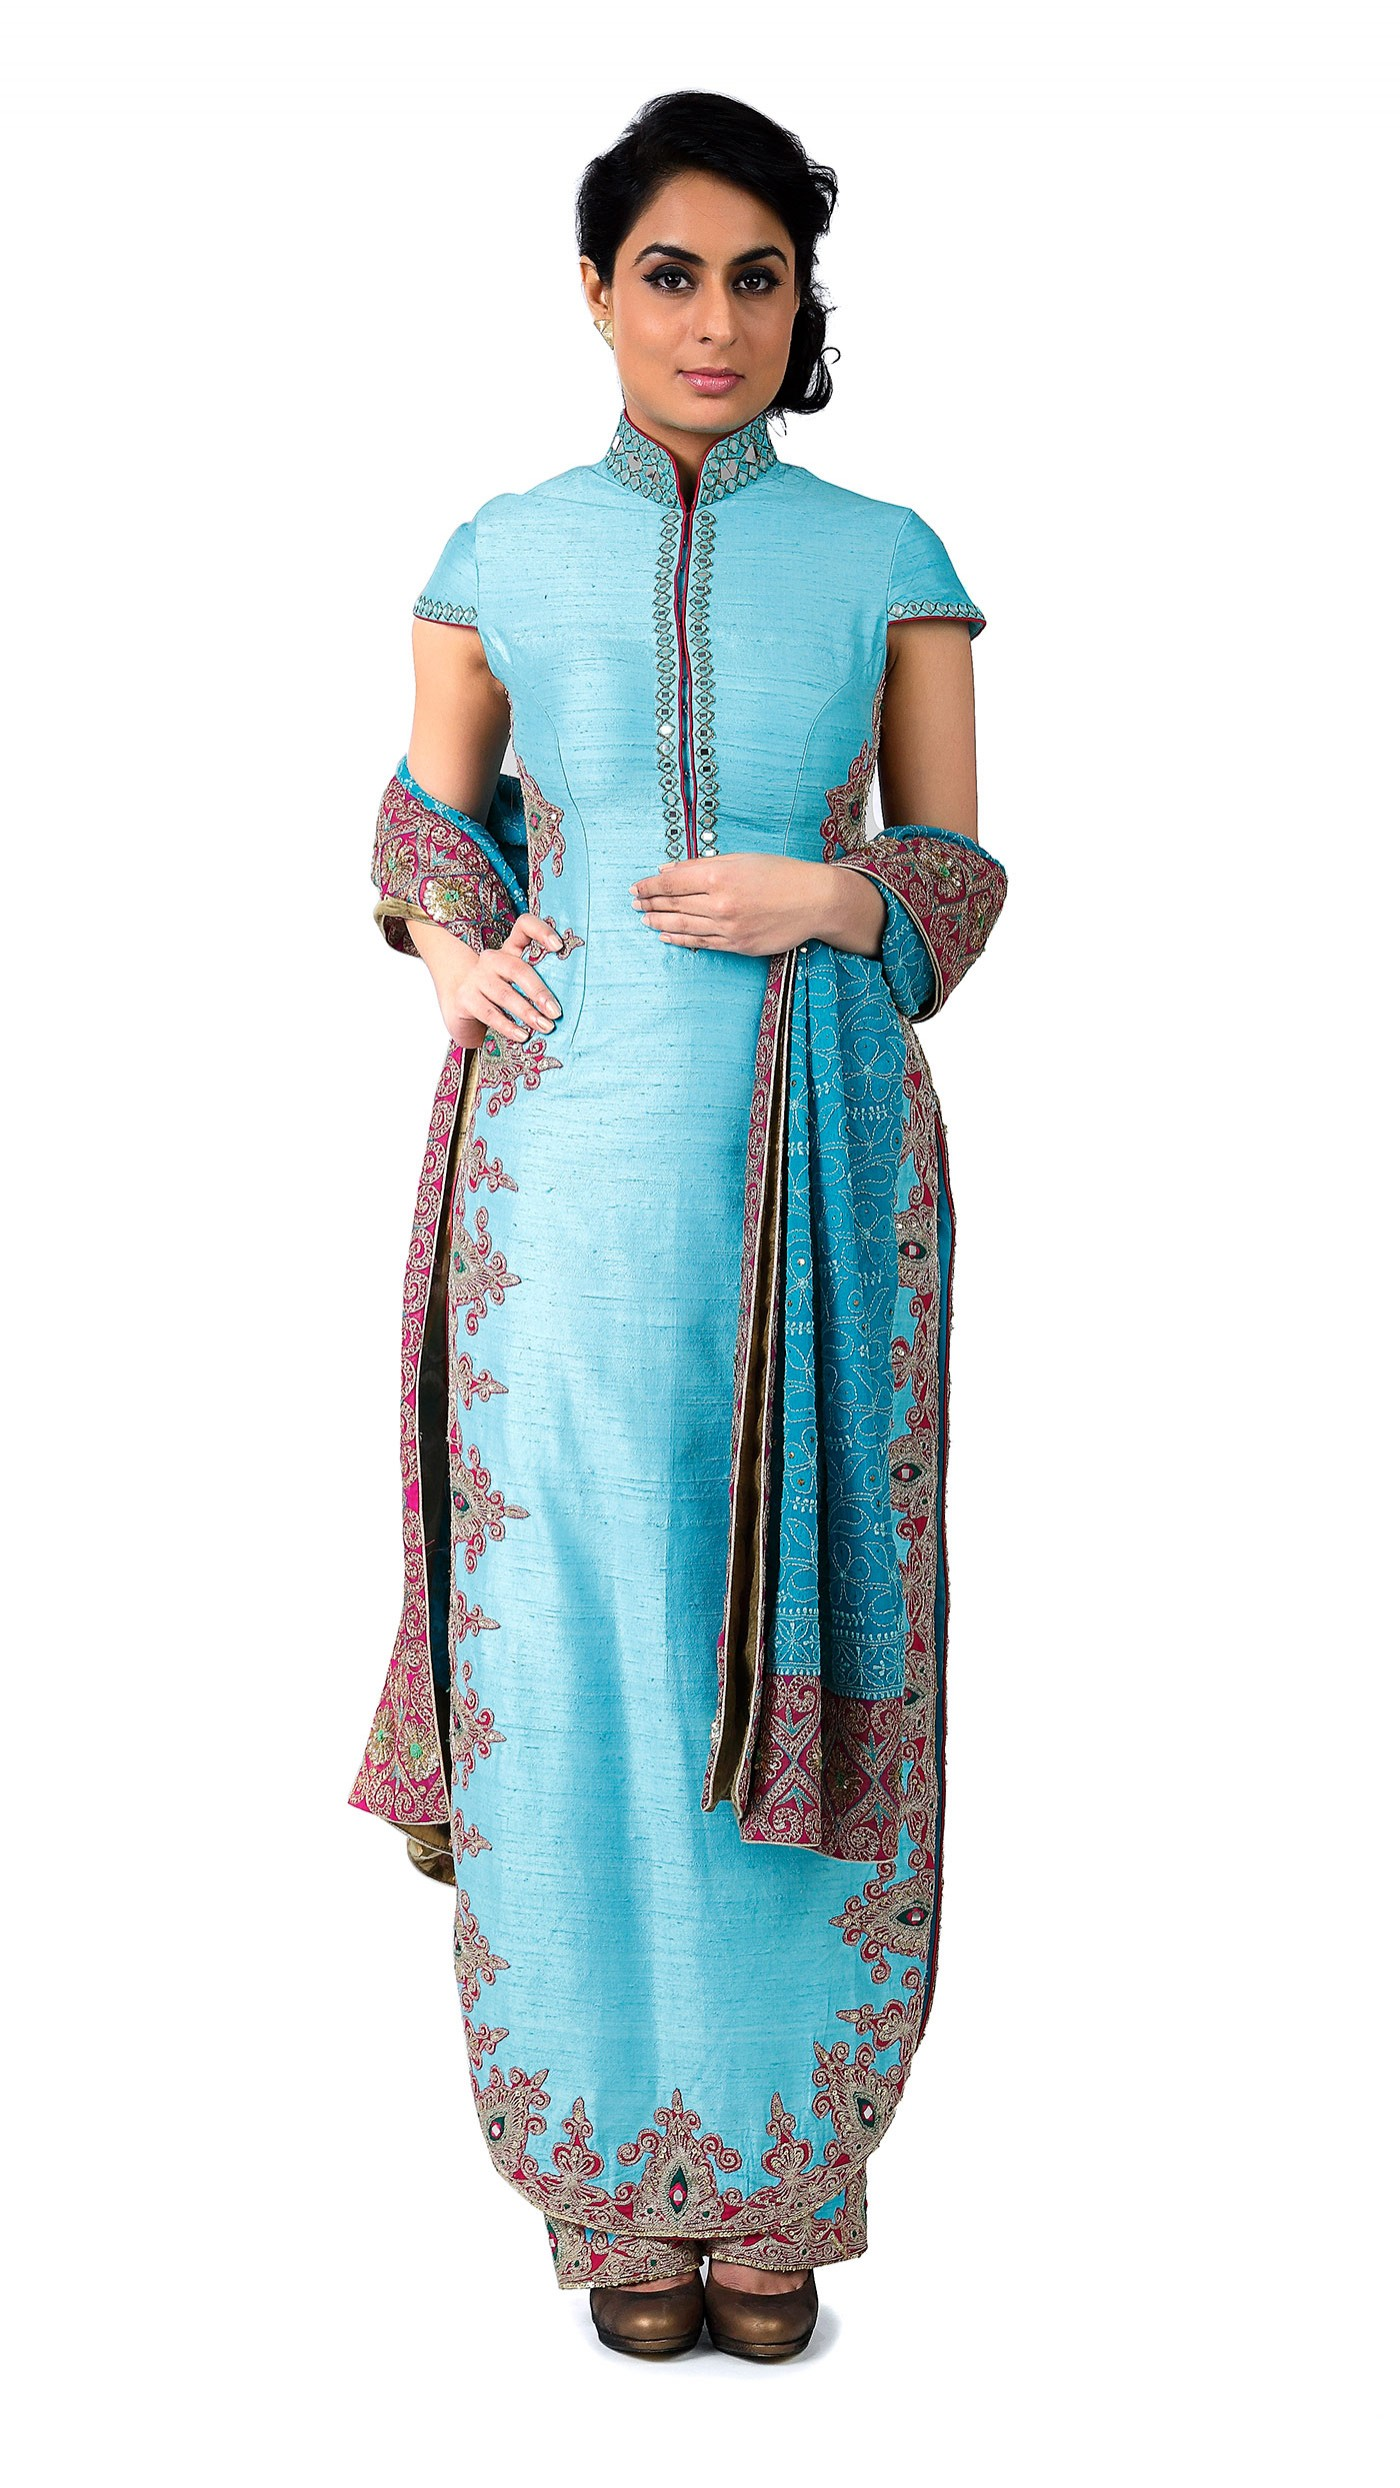 U-Shaped Kurta,Silk Kurta, Designer Kurti, Embroidery Designs